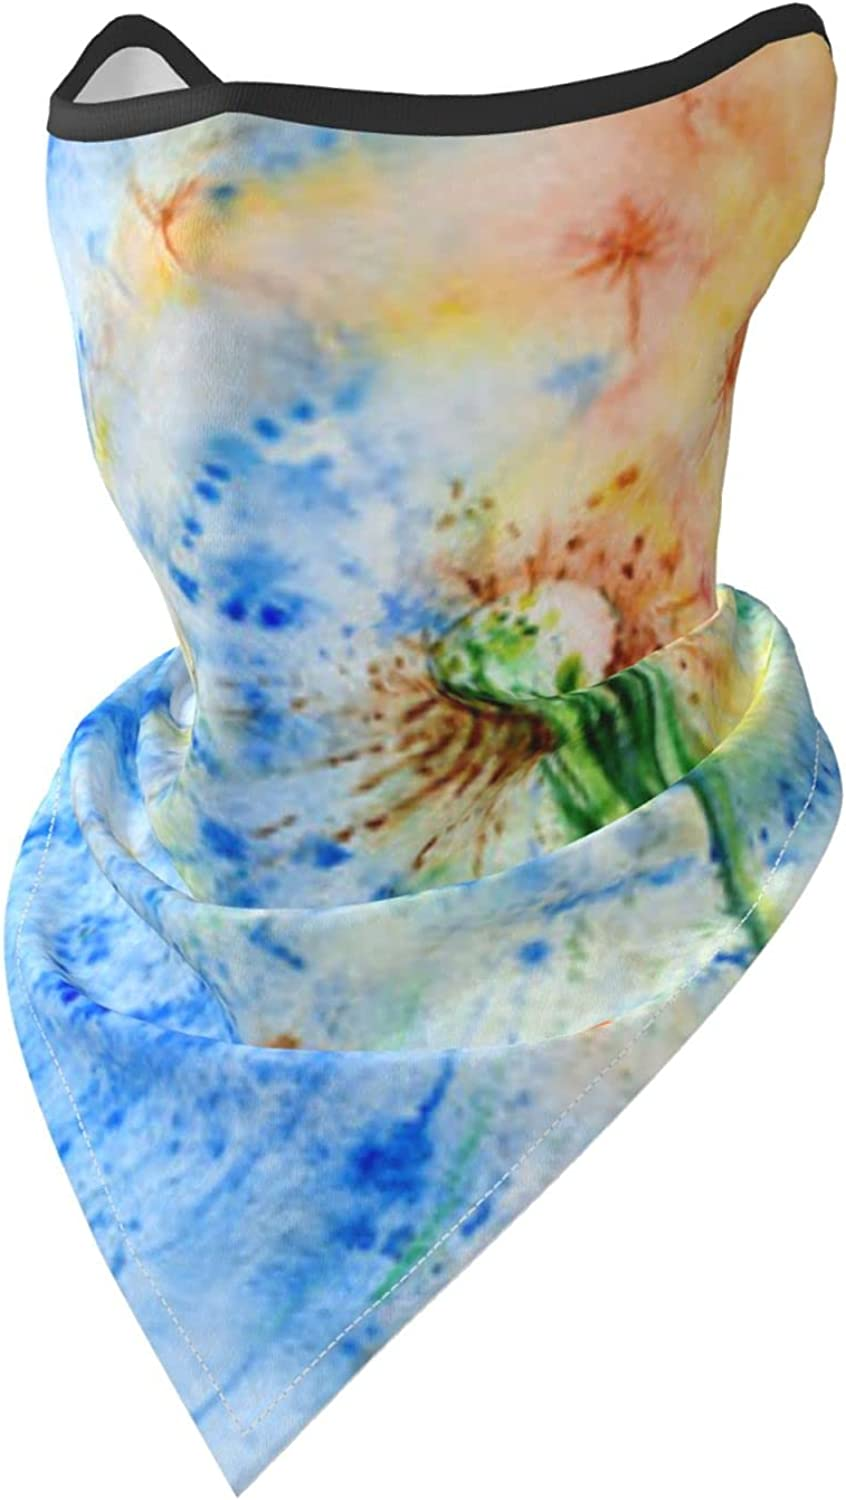 Dandelion Cosmic Flower Watercolor Paintings Breathable Bandana Face Mask Neck Gaiter Windproof Sports Mask Scarf Headwear for Men Women Outdoor Hiking Cycling Running Motorcycling